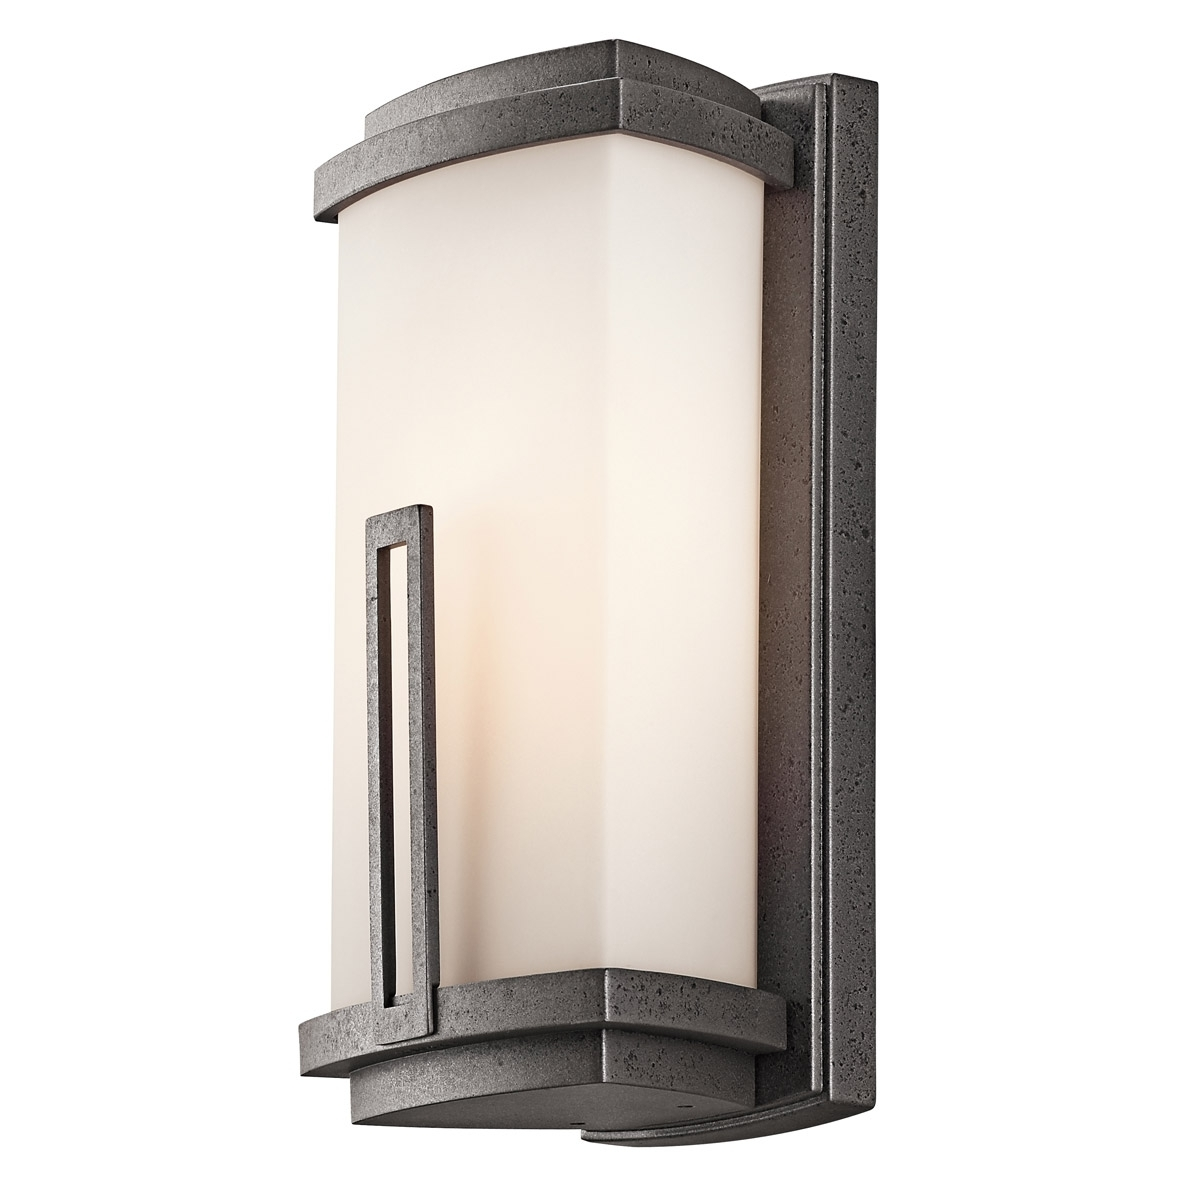 Most Current Kichler Outdoor Lighting Wall Sconces Inside Kichler 9244 Modern 2 Light Outdoor Wall Sconce • Wall Sconces (View 13 of 20)